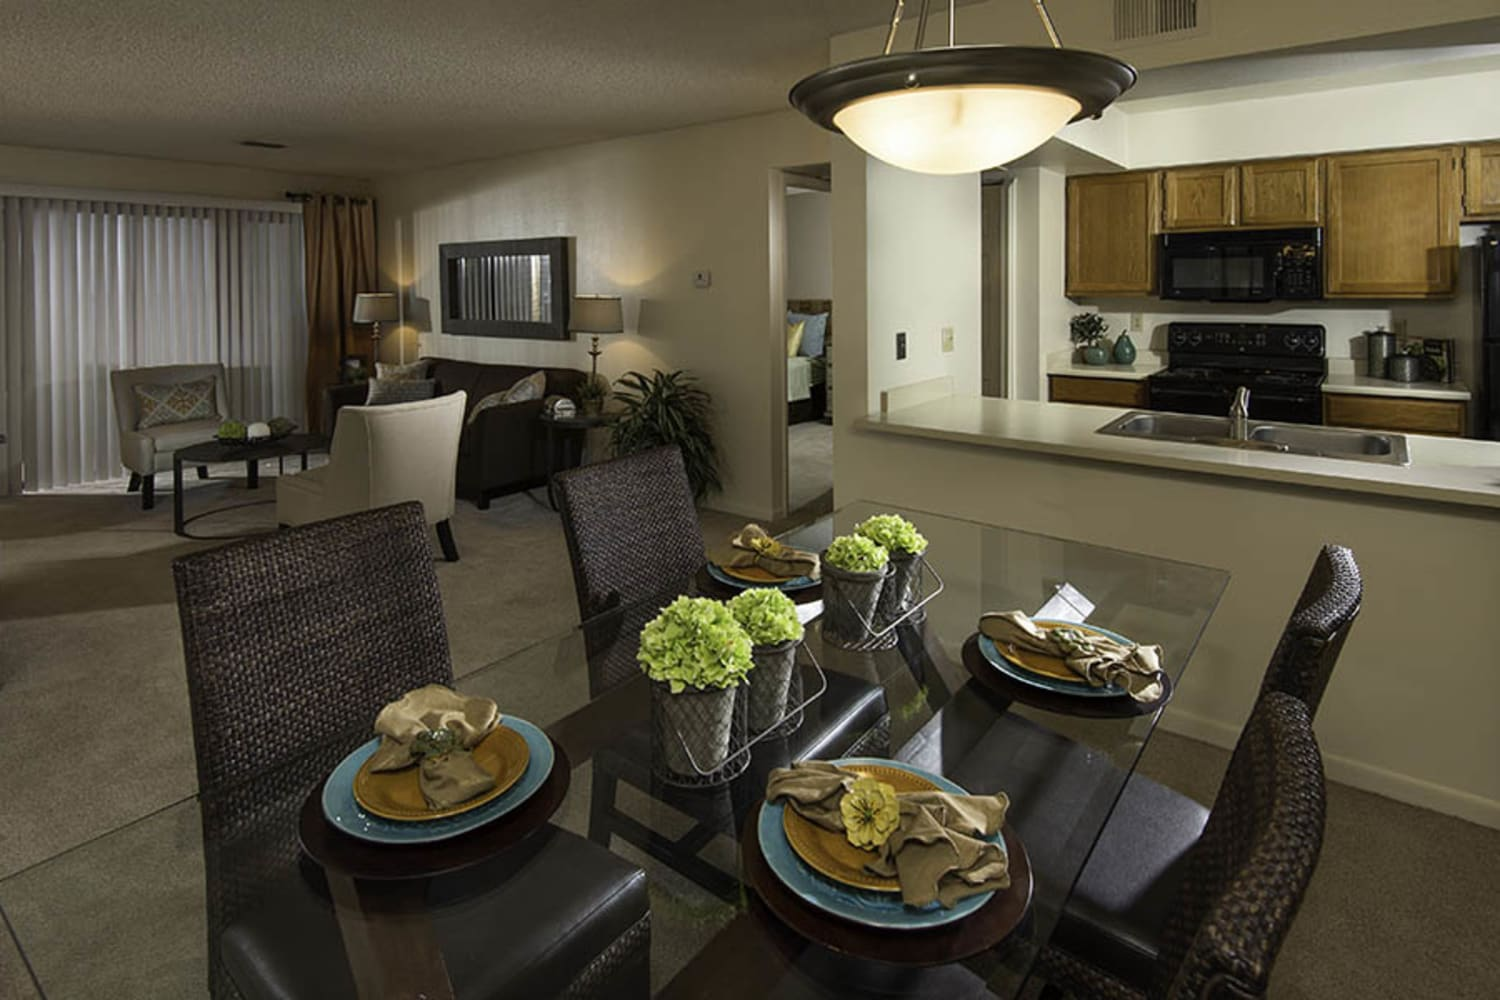 Modern and open living room and dining room floor plans Waterford Place Apartments in Mesa, Arizona